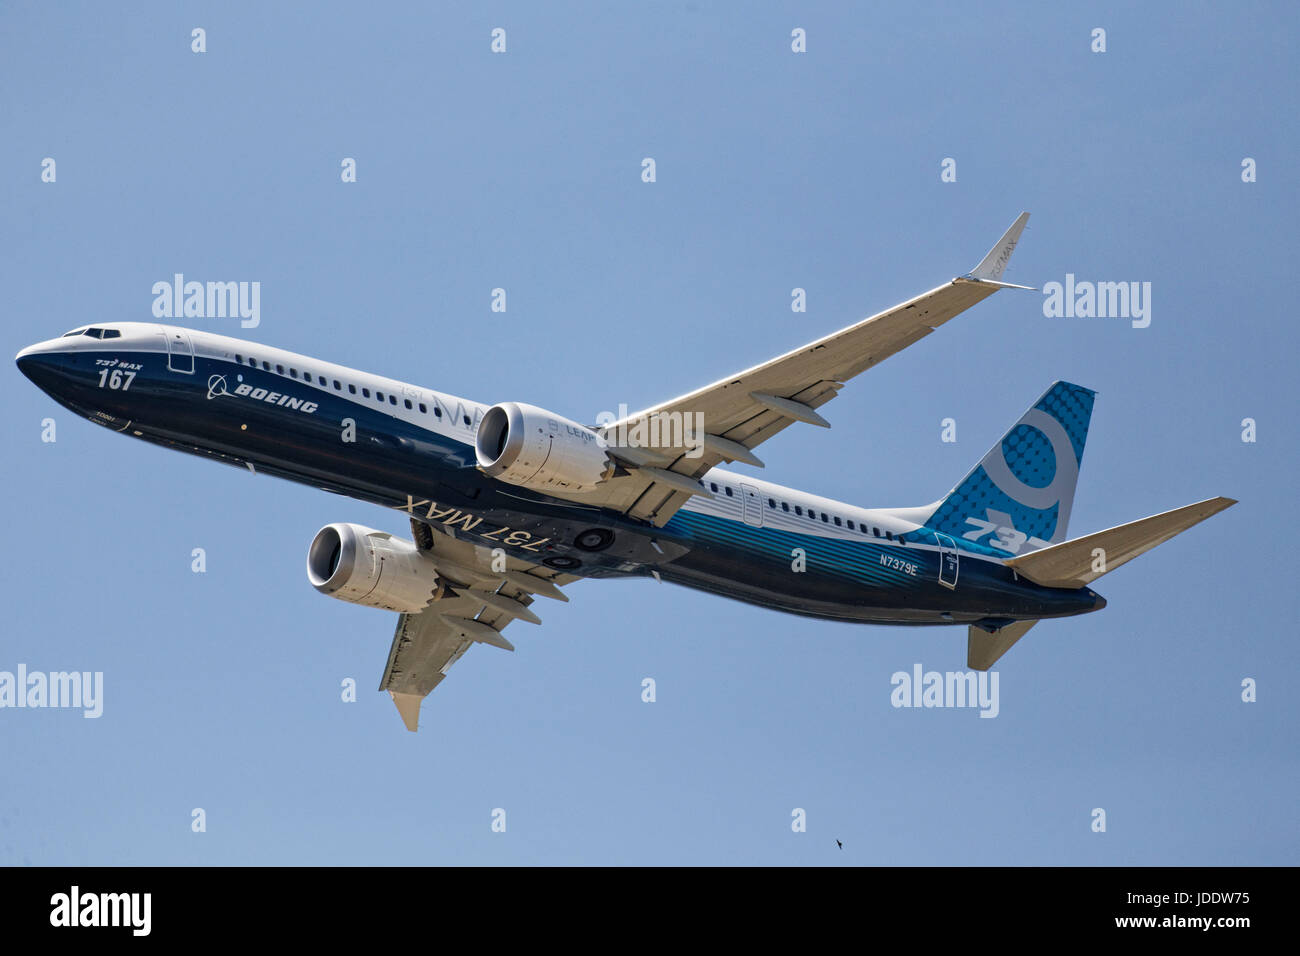 737 Max 10 Stock Photos & 737 Max 10 Stock Images - Alamy